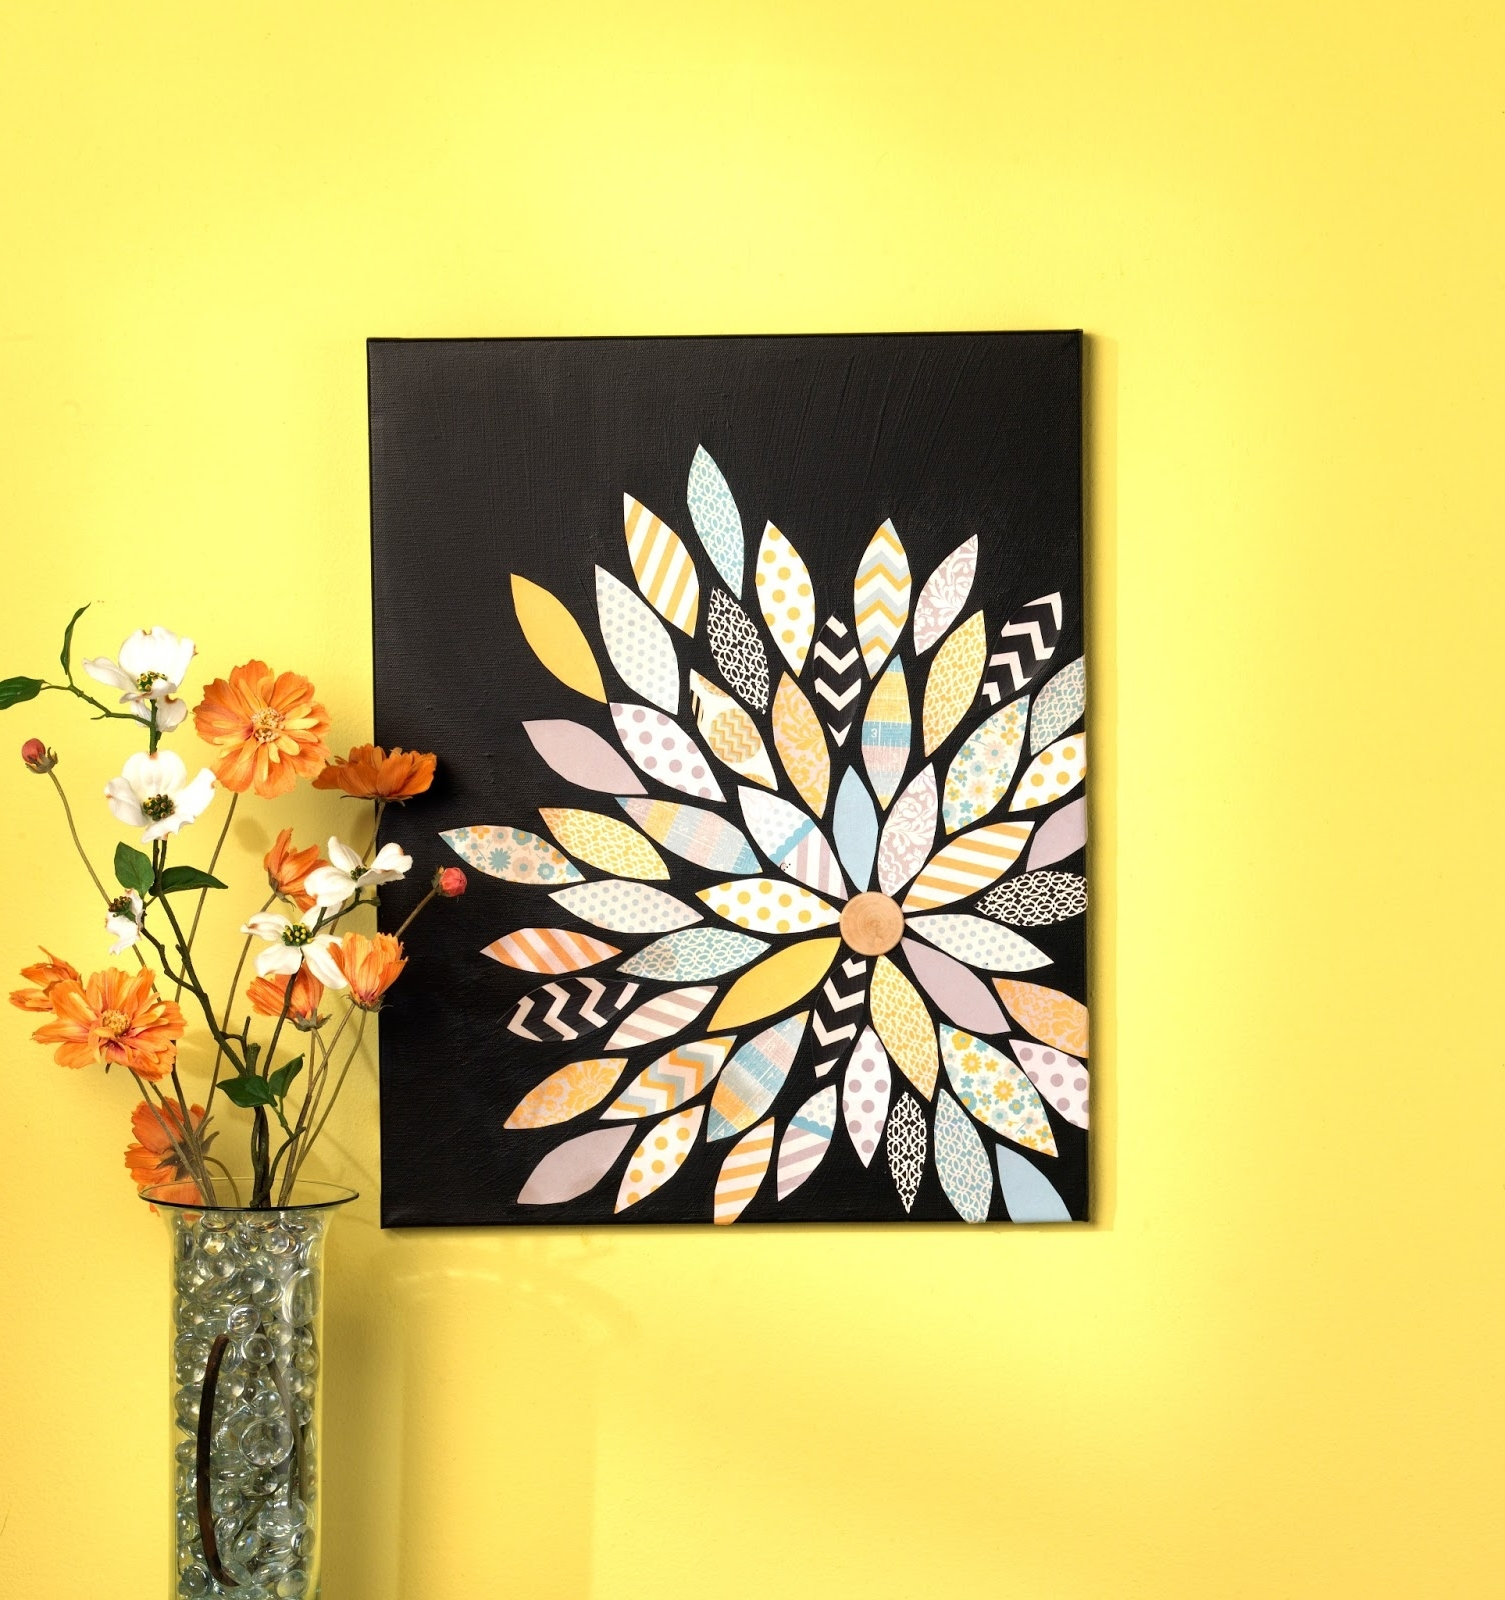 15 Best Ideas of Diy Pinterest Canvas Art